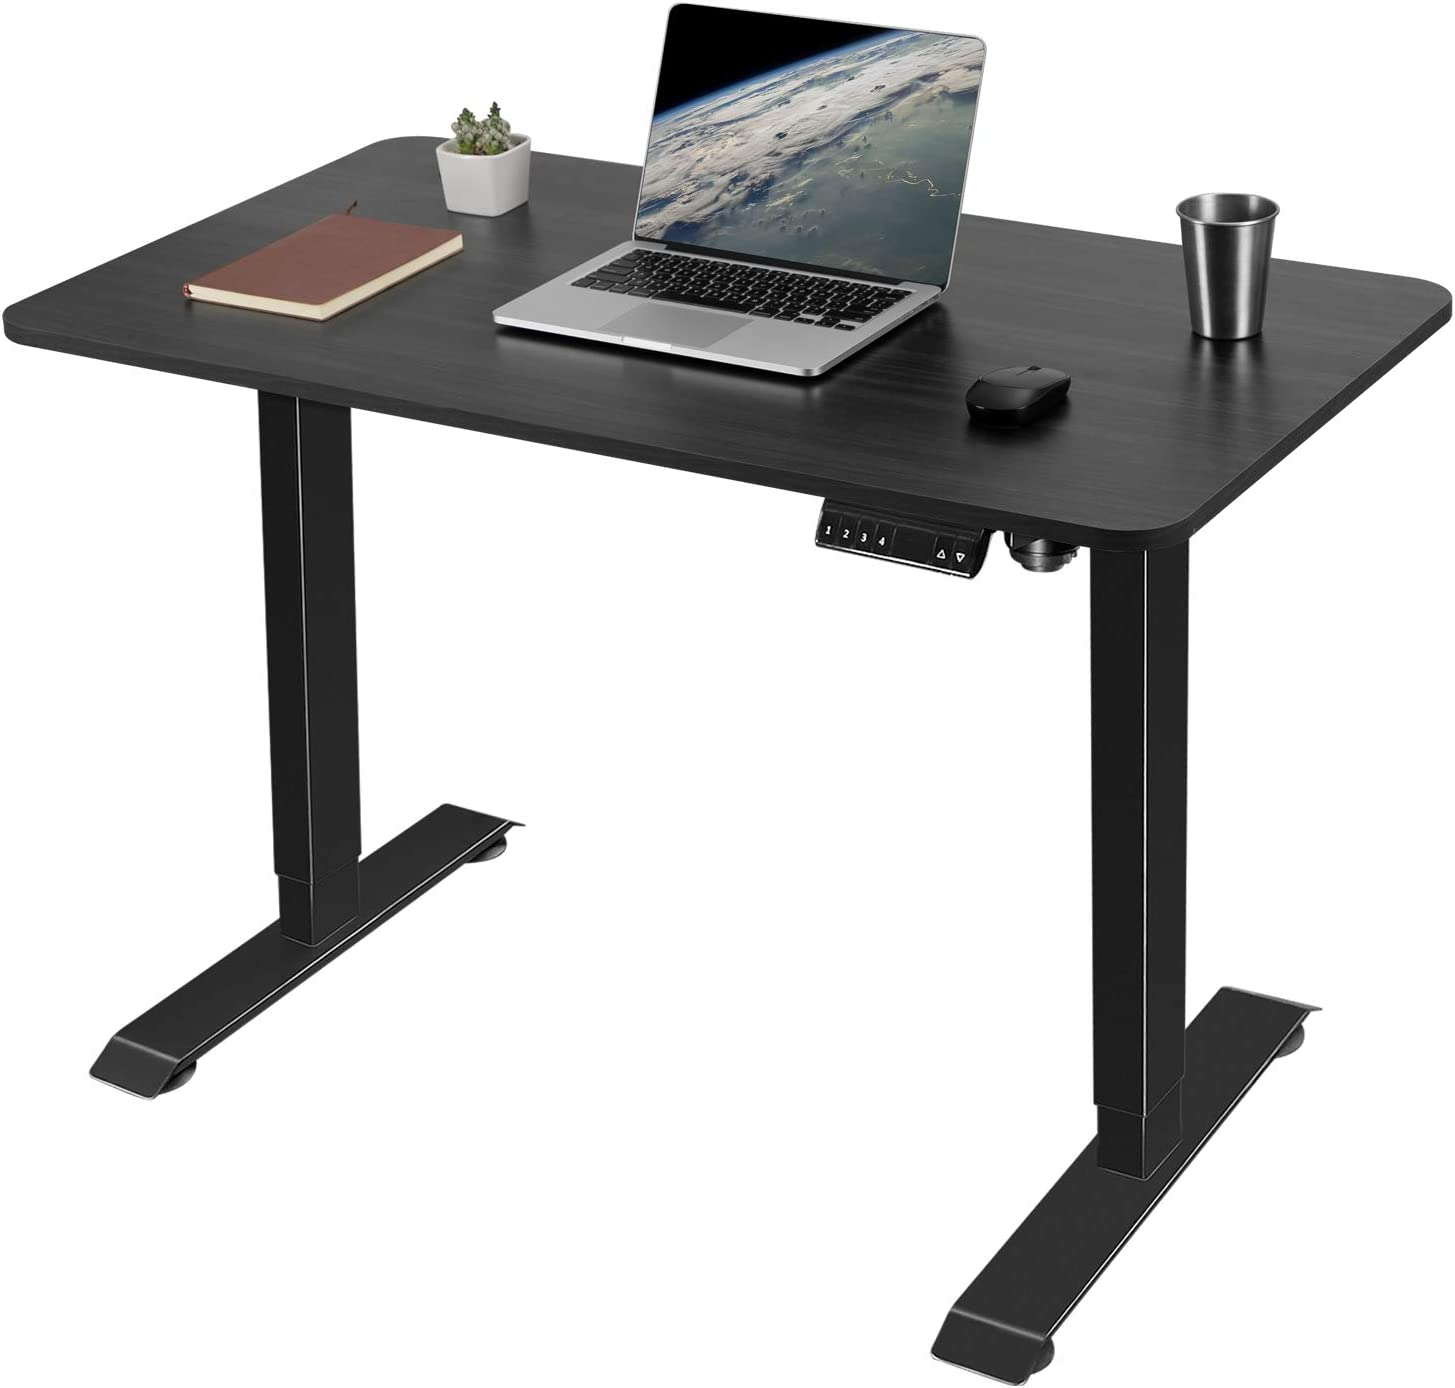 Greesum Electric Height Adjustable Home Office Standing Desk, Modern Design 43-Inch Computer Table for Healthy Working, Black